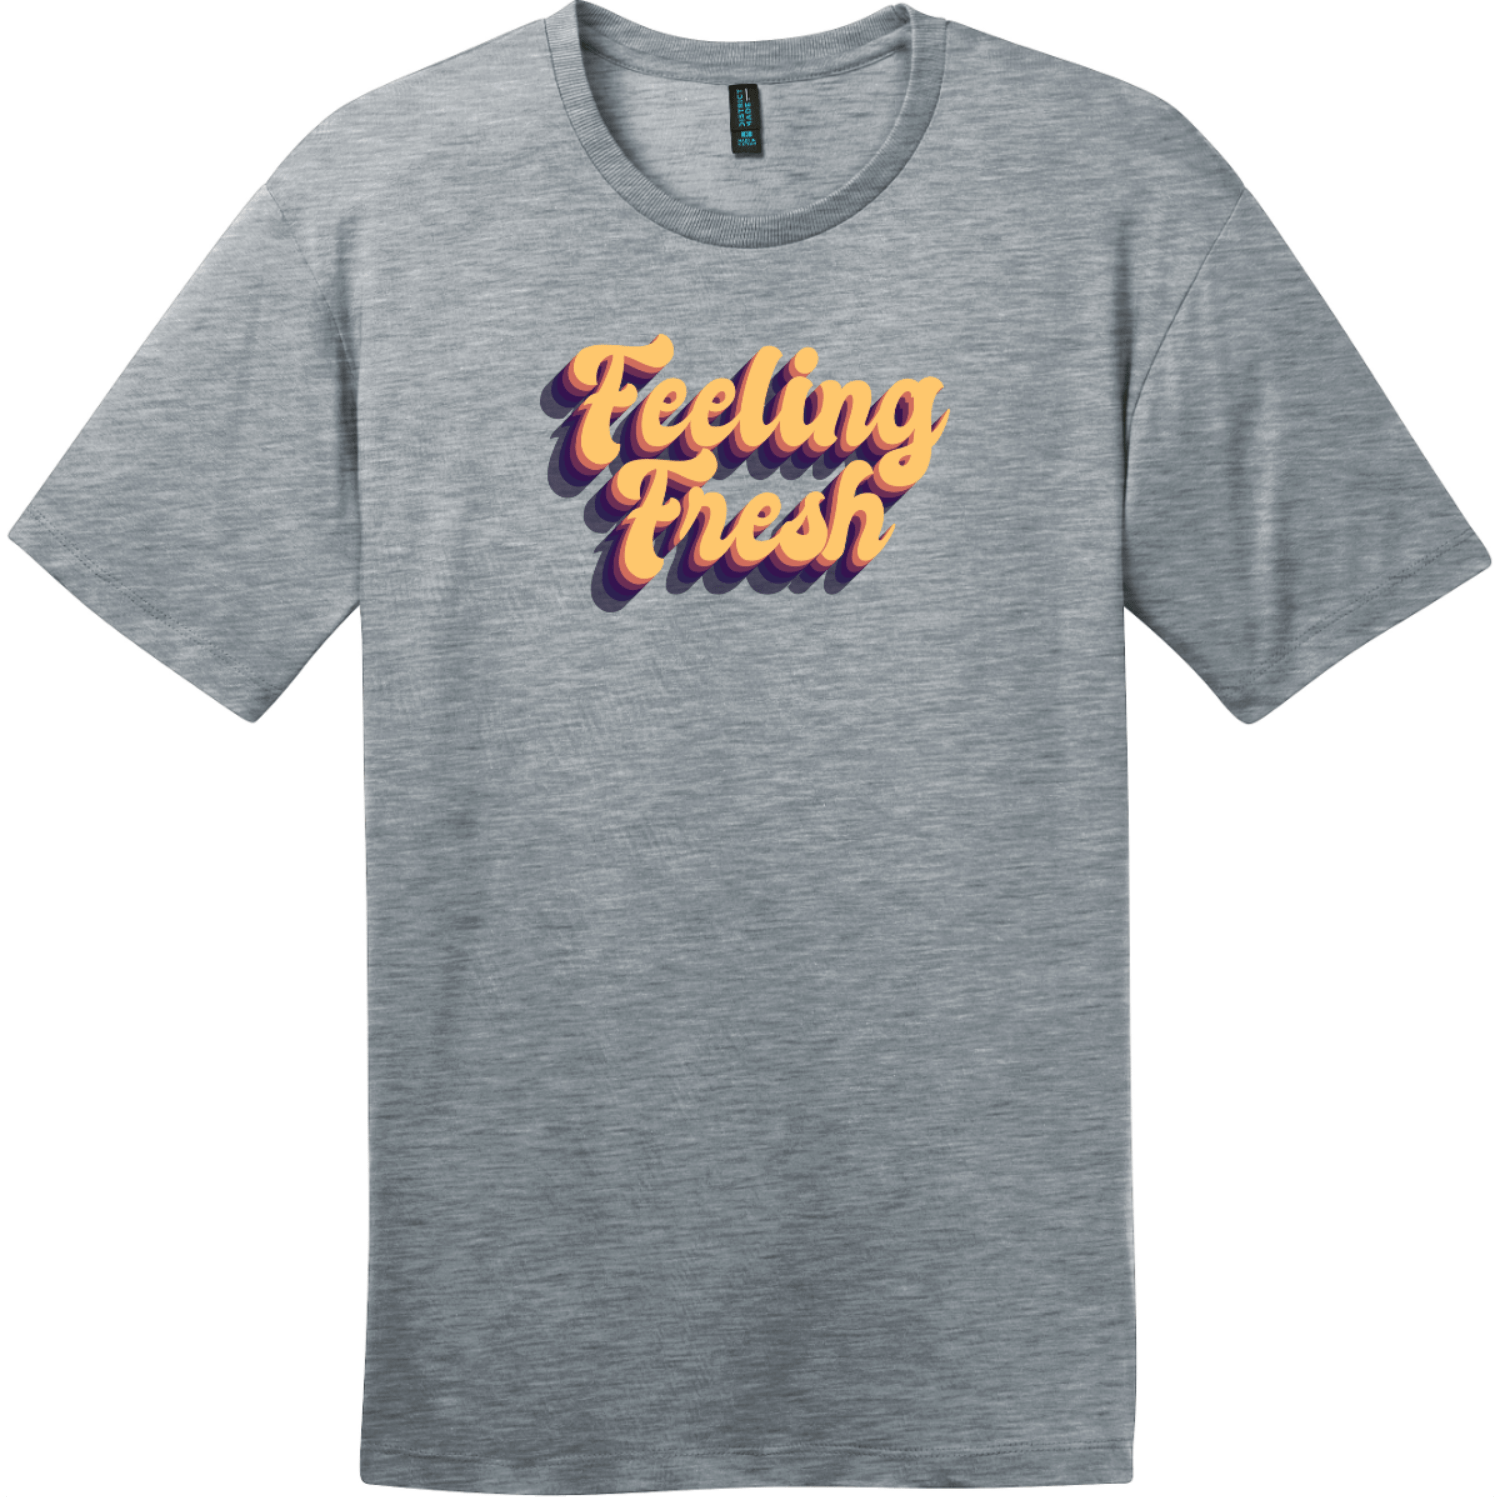 Feeling Fresh Retro T-Shirt Heathered Steel District Perfect Weight Tee DT104